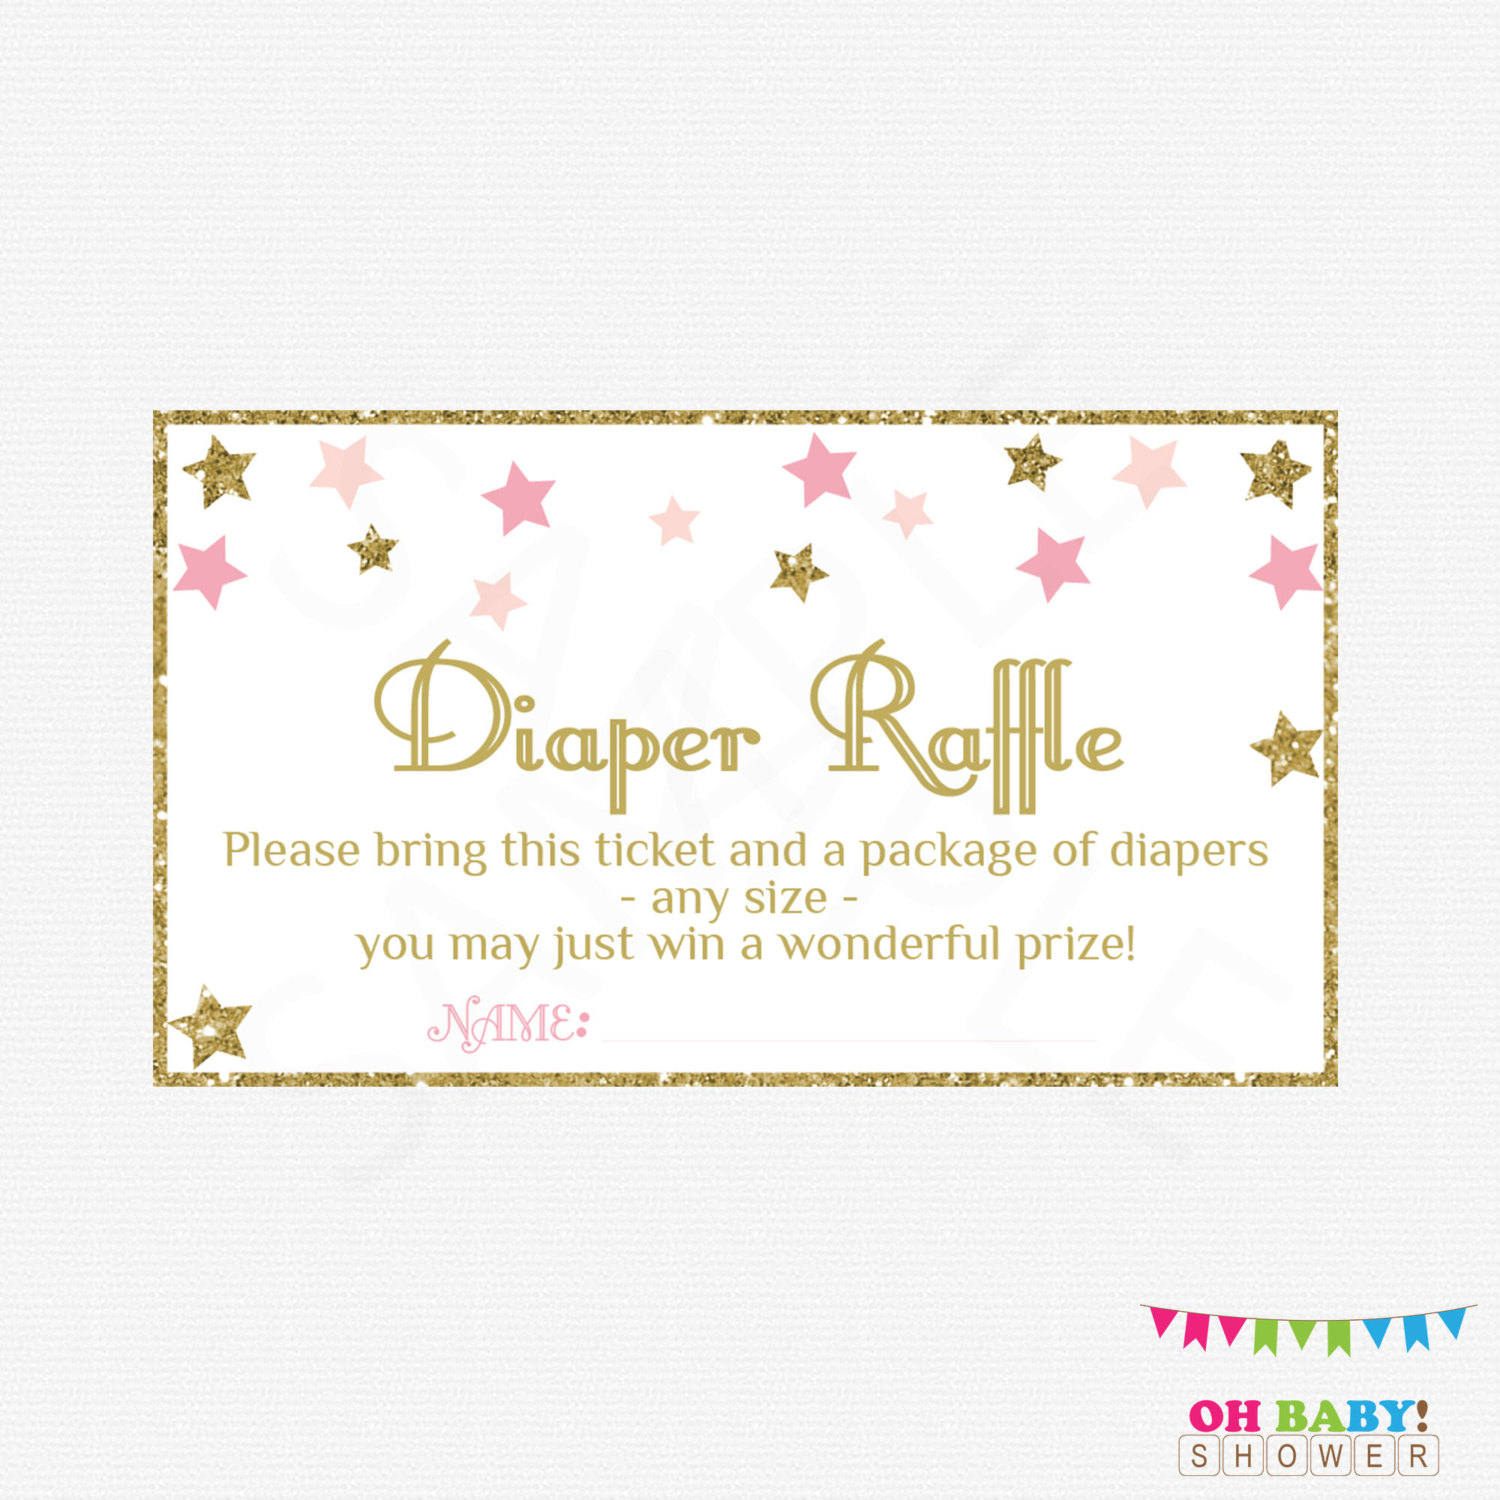 Twinkle Twinkle Little Star Baby Shower Diaper Raffle Ticket | Etsy - Free Printable Baby Shower Diaper Raffle Tickets